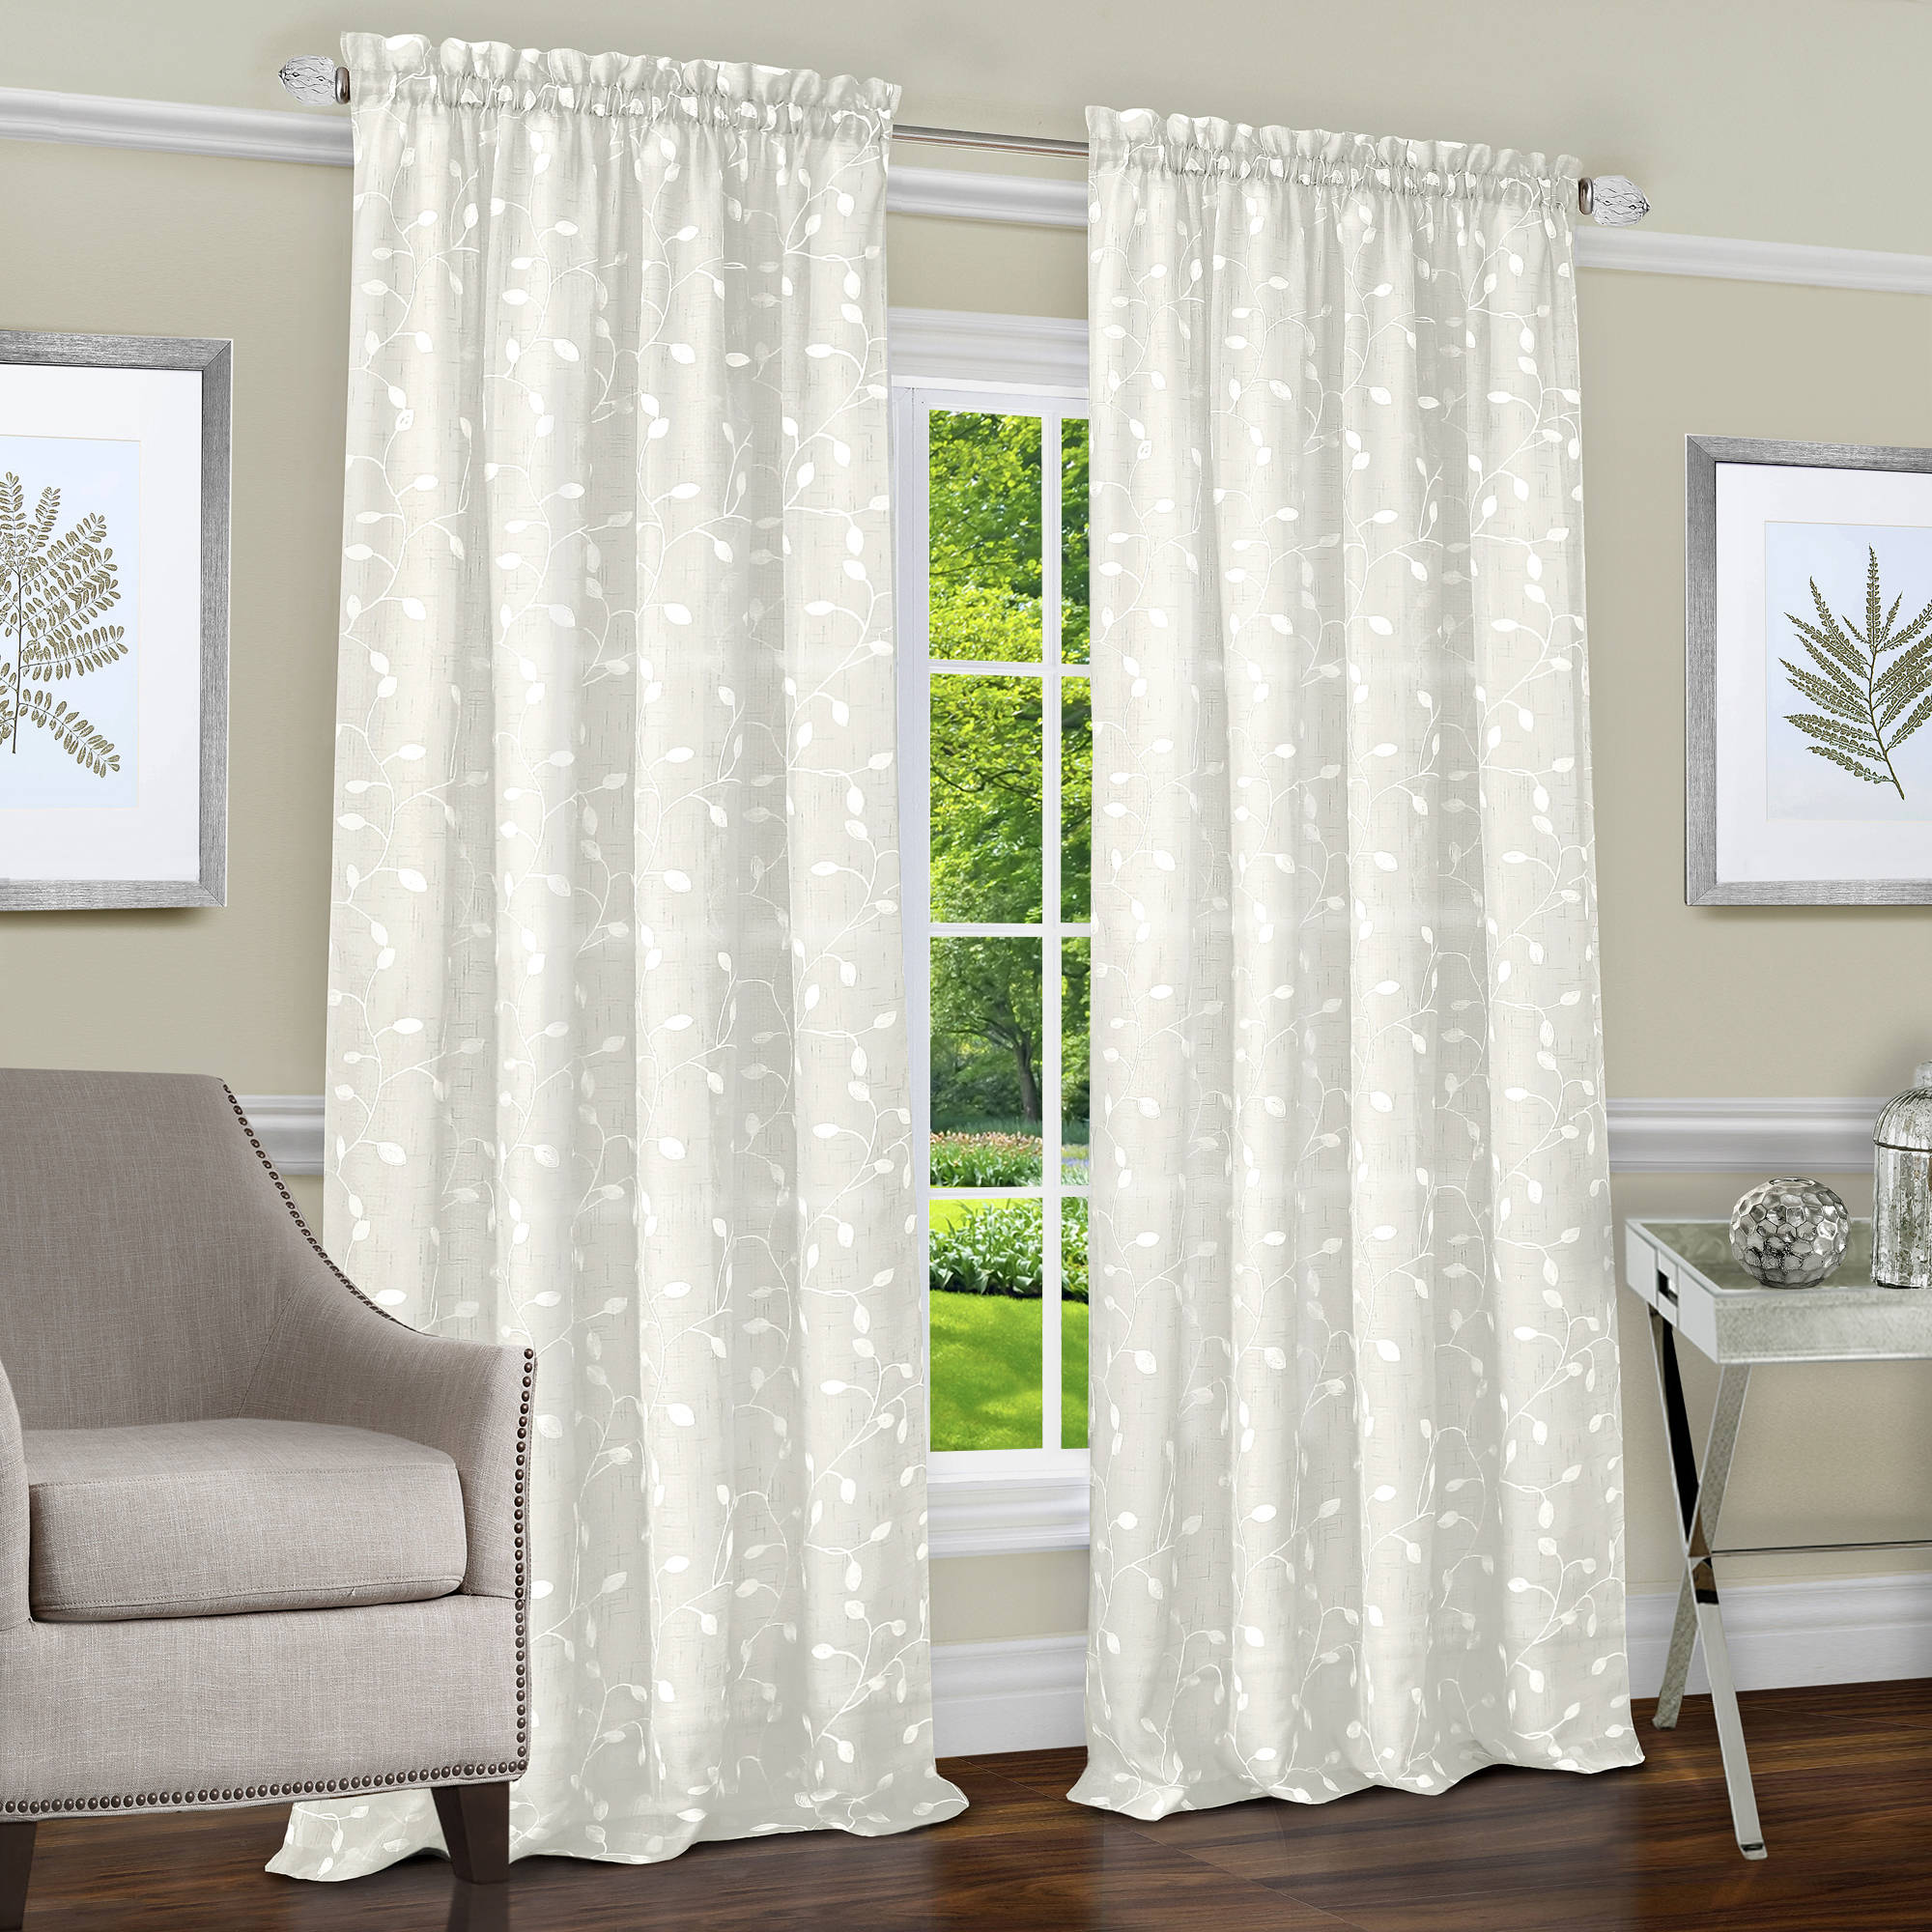 Chloe Rod Pocket Window Curtain Panel by Achim Importing Co. Inc